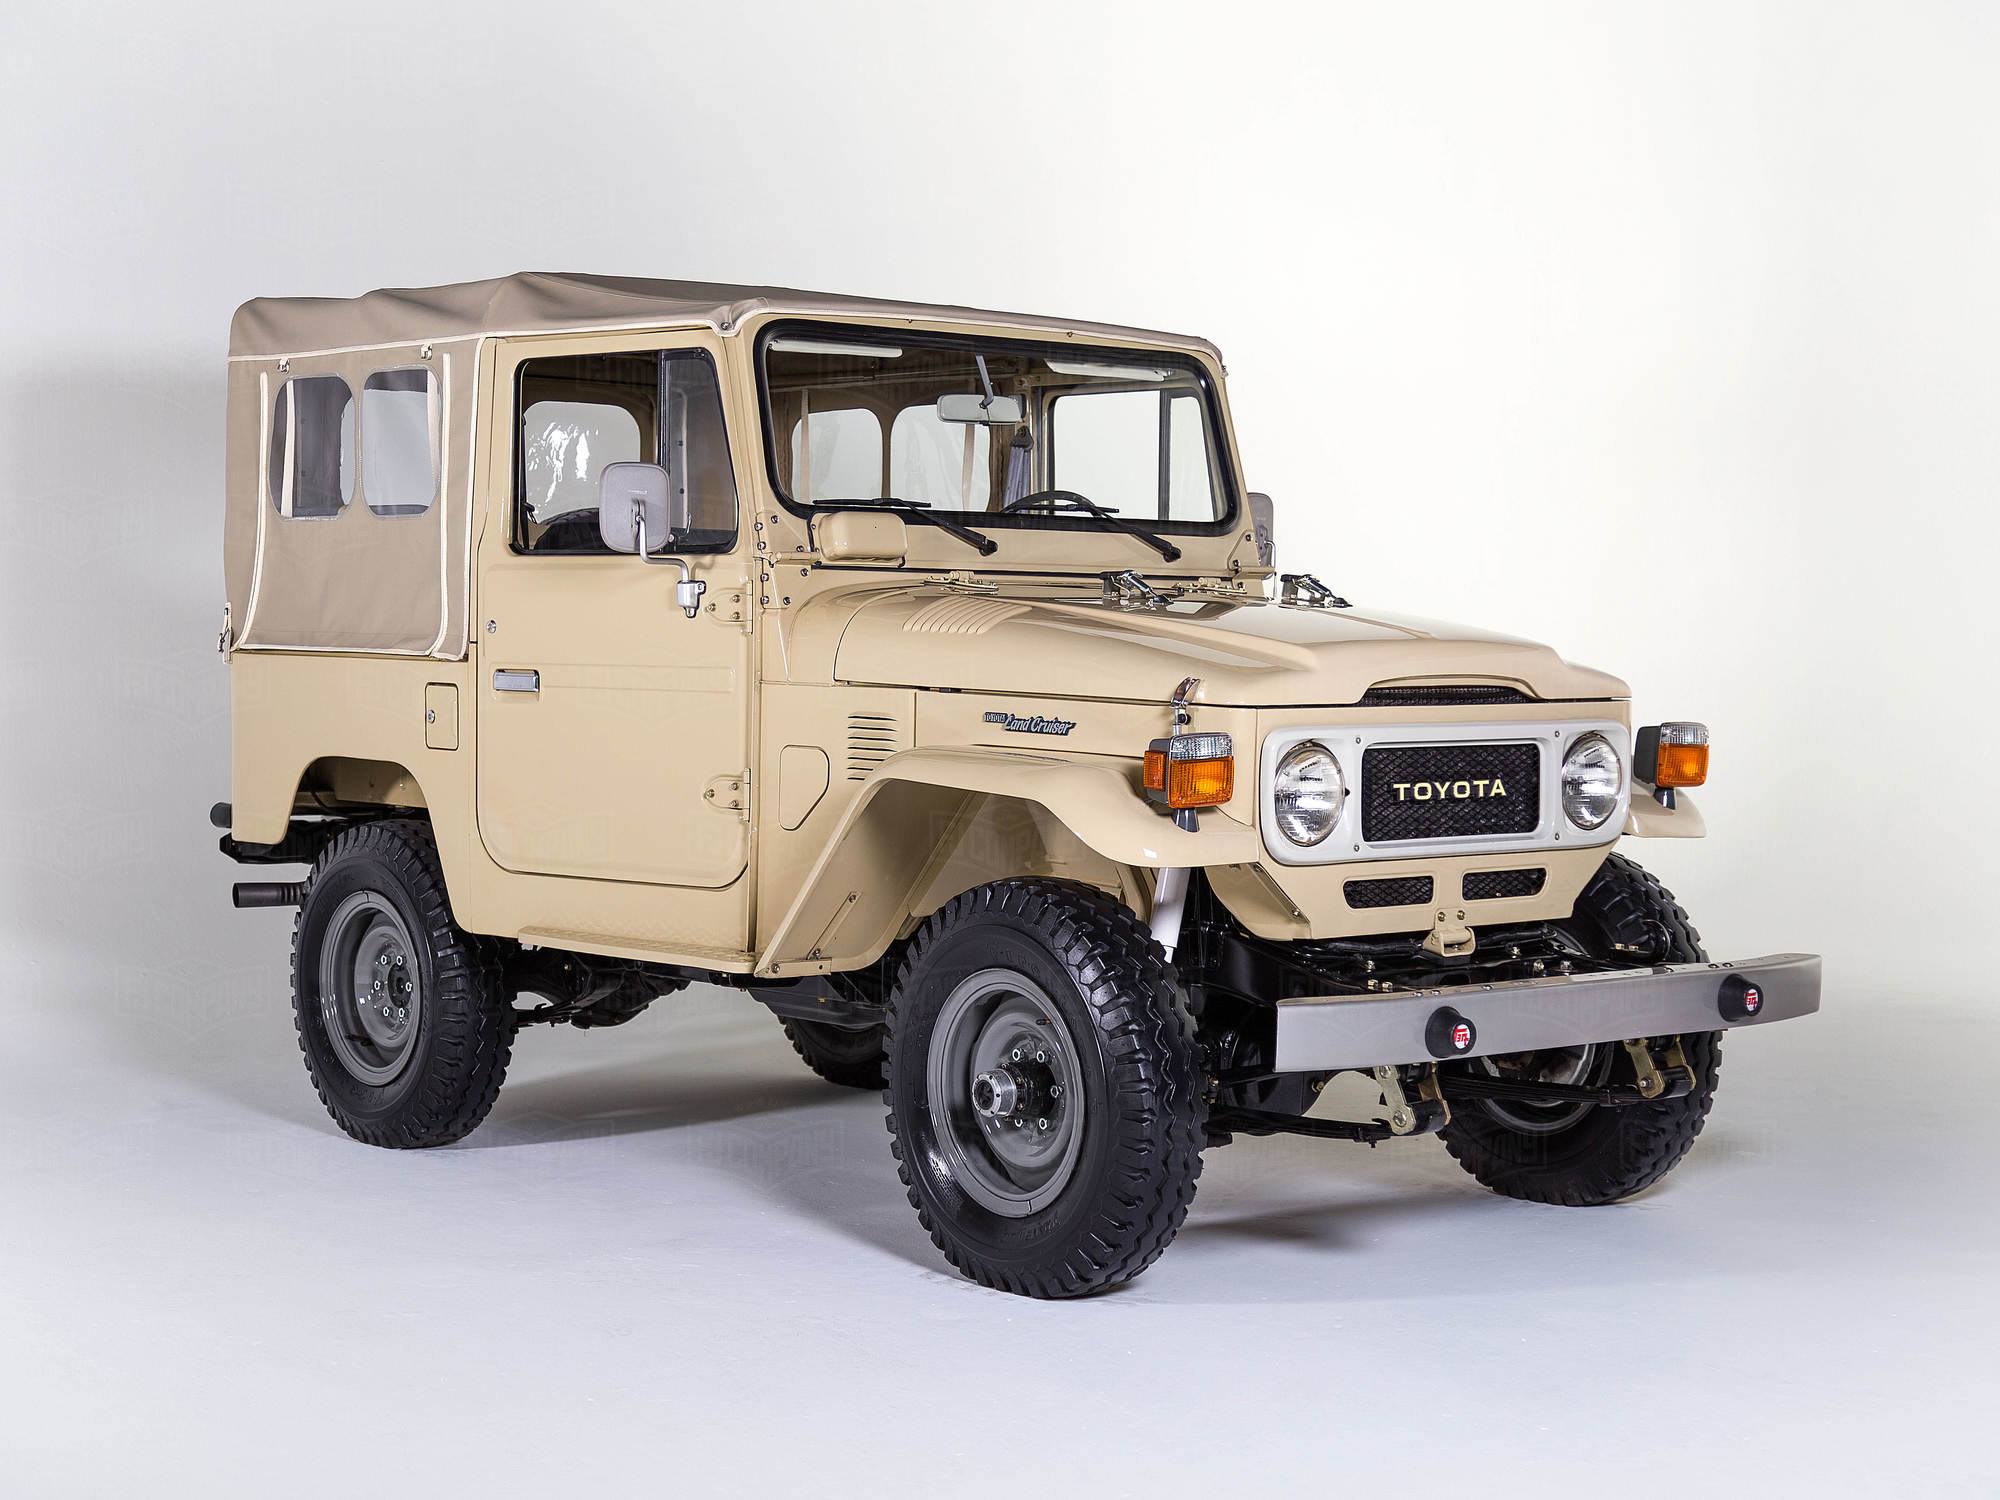 This striking Land Cruiser received our complete nut and bolt restoration.